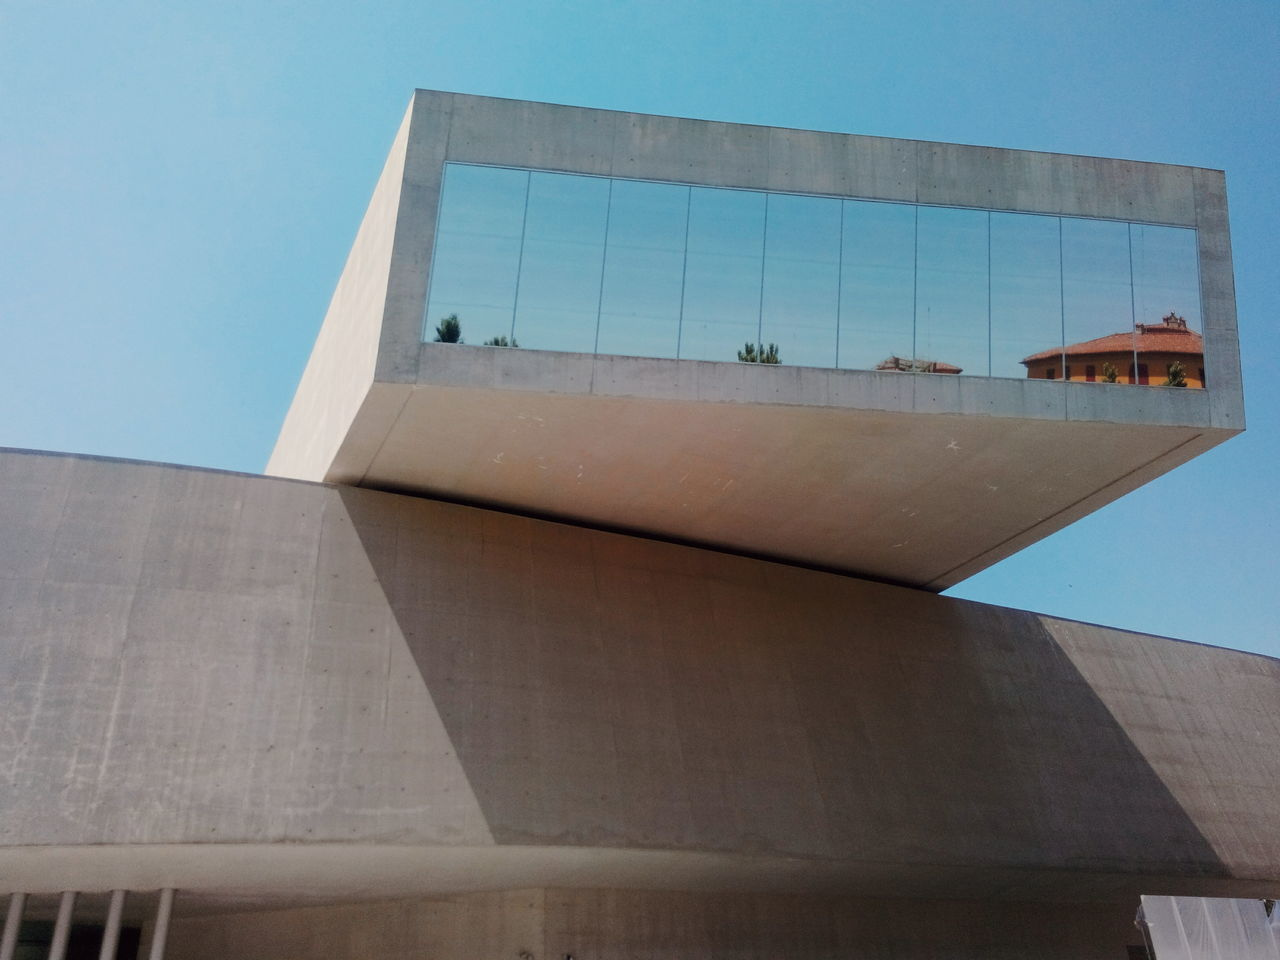 architecture, built structure, building exterior, low angle view, day, no people, outdoors, clear sky, sky